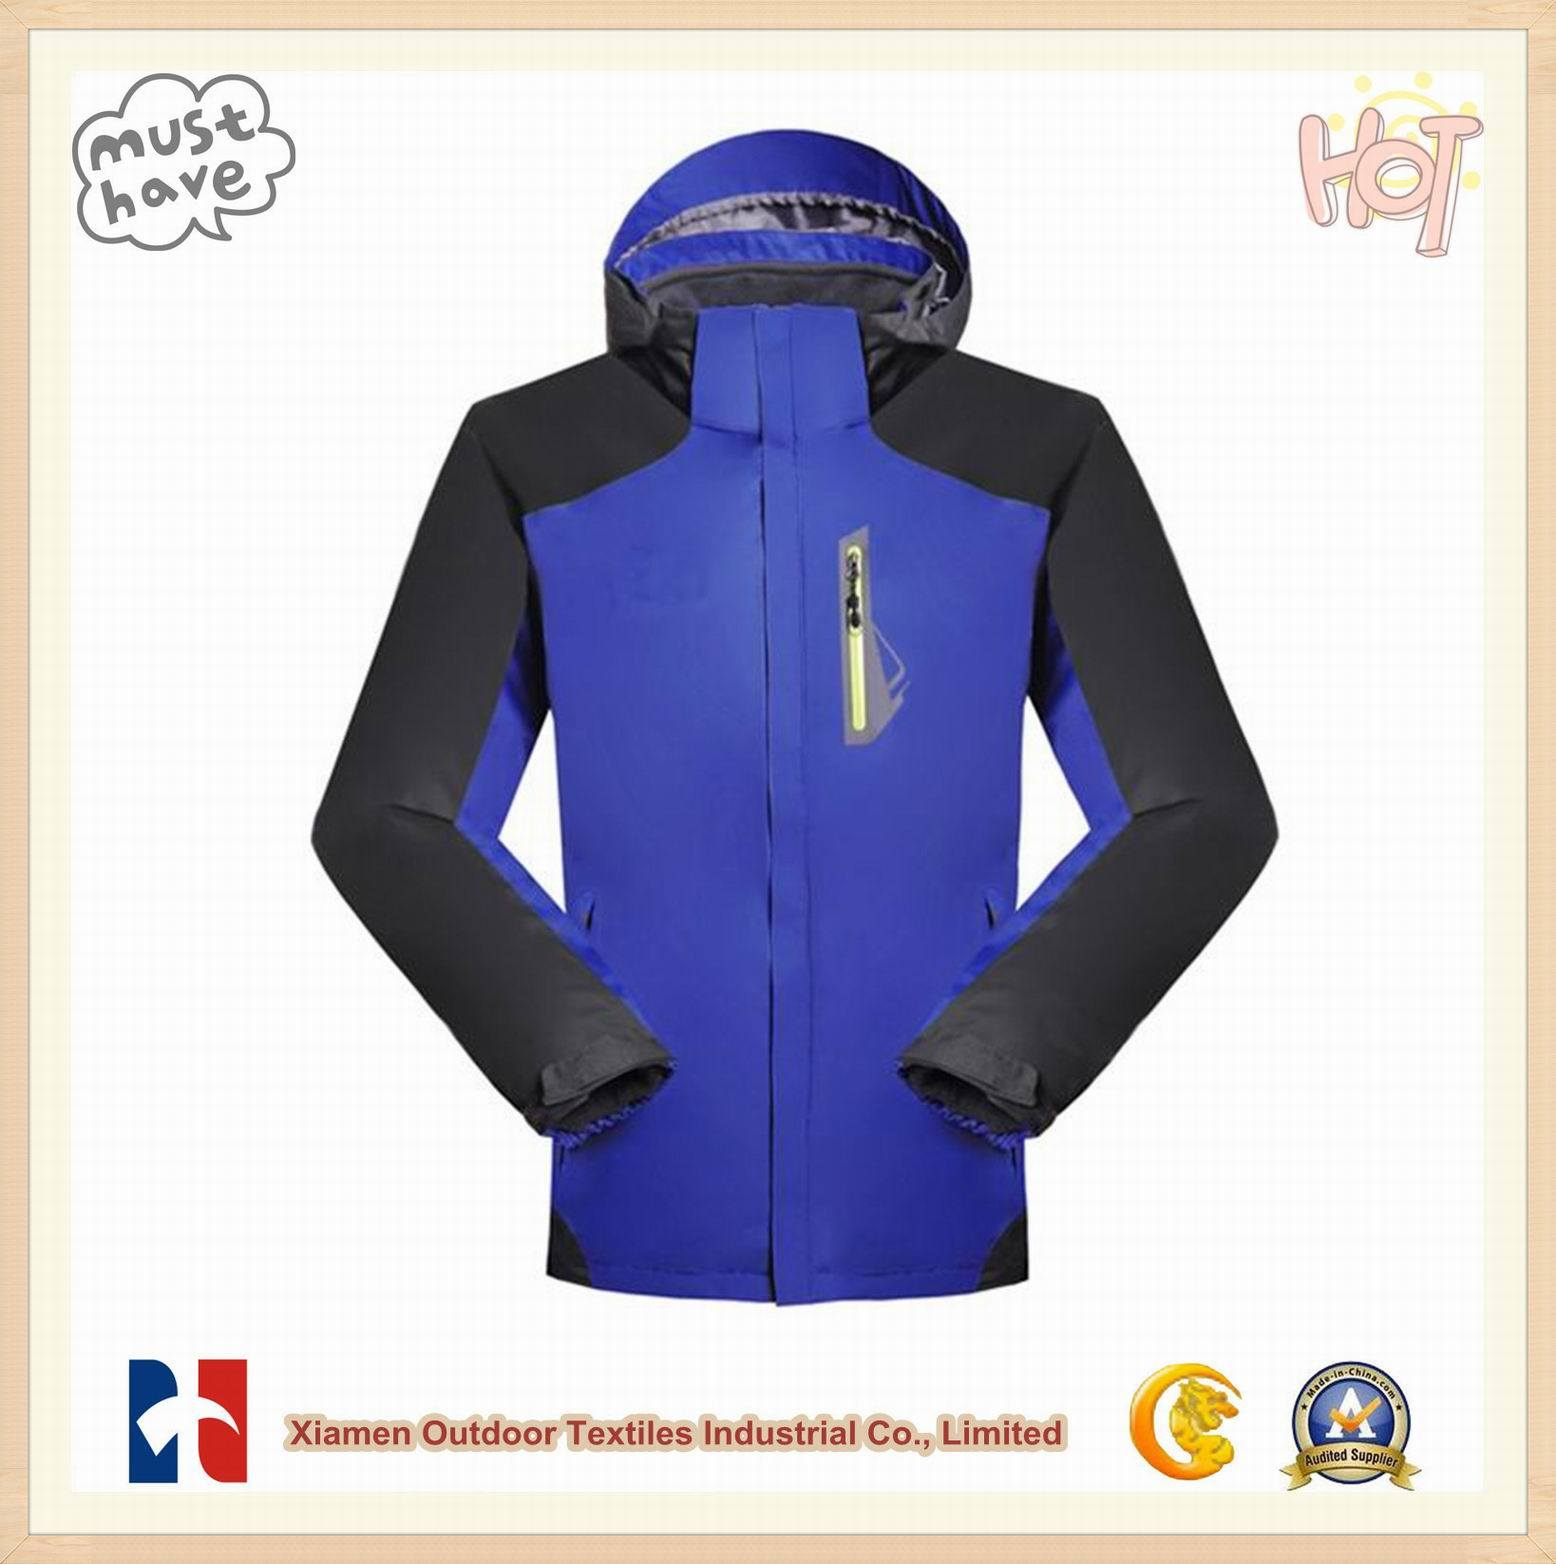 2013 New Design 2 in 1 Jacket